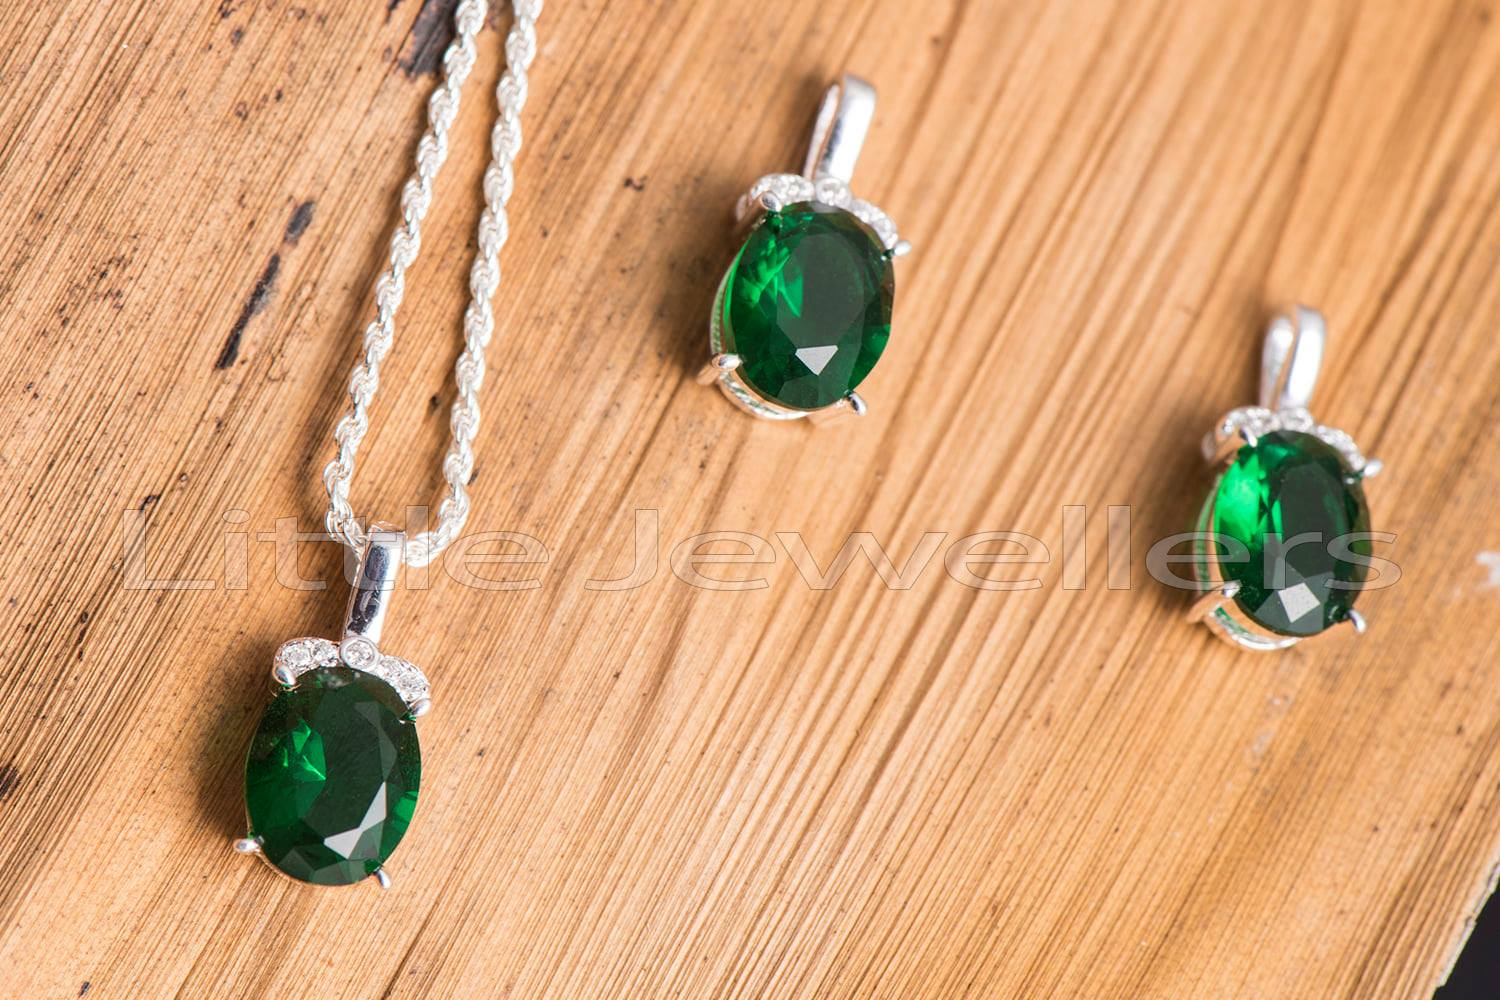 A simple yet elegant cz emerald necklace set that's perfect for everyday wear